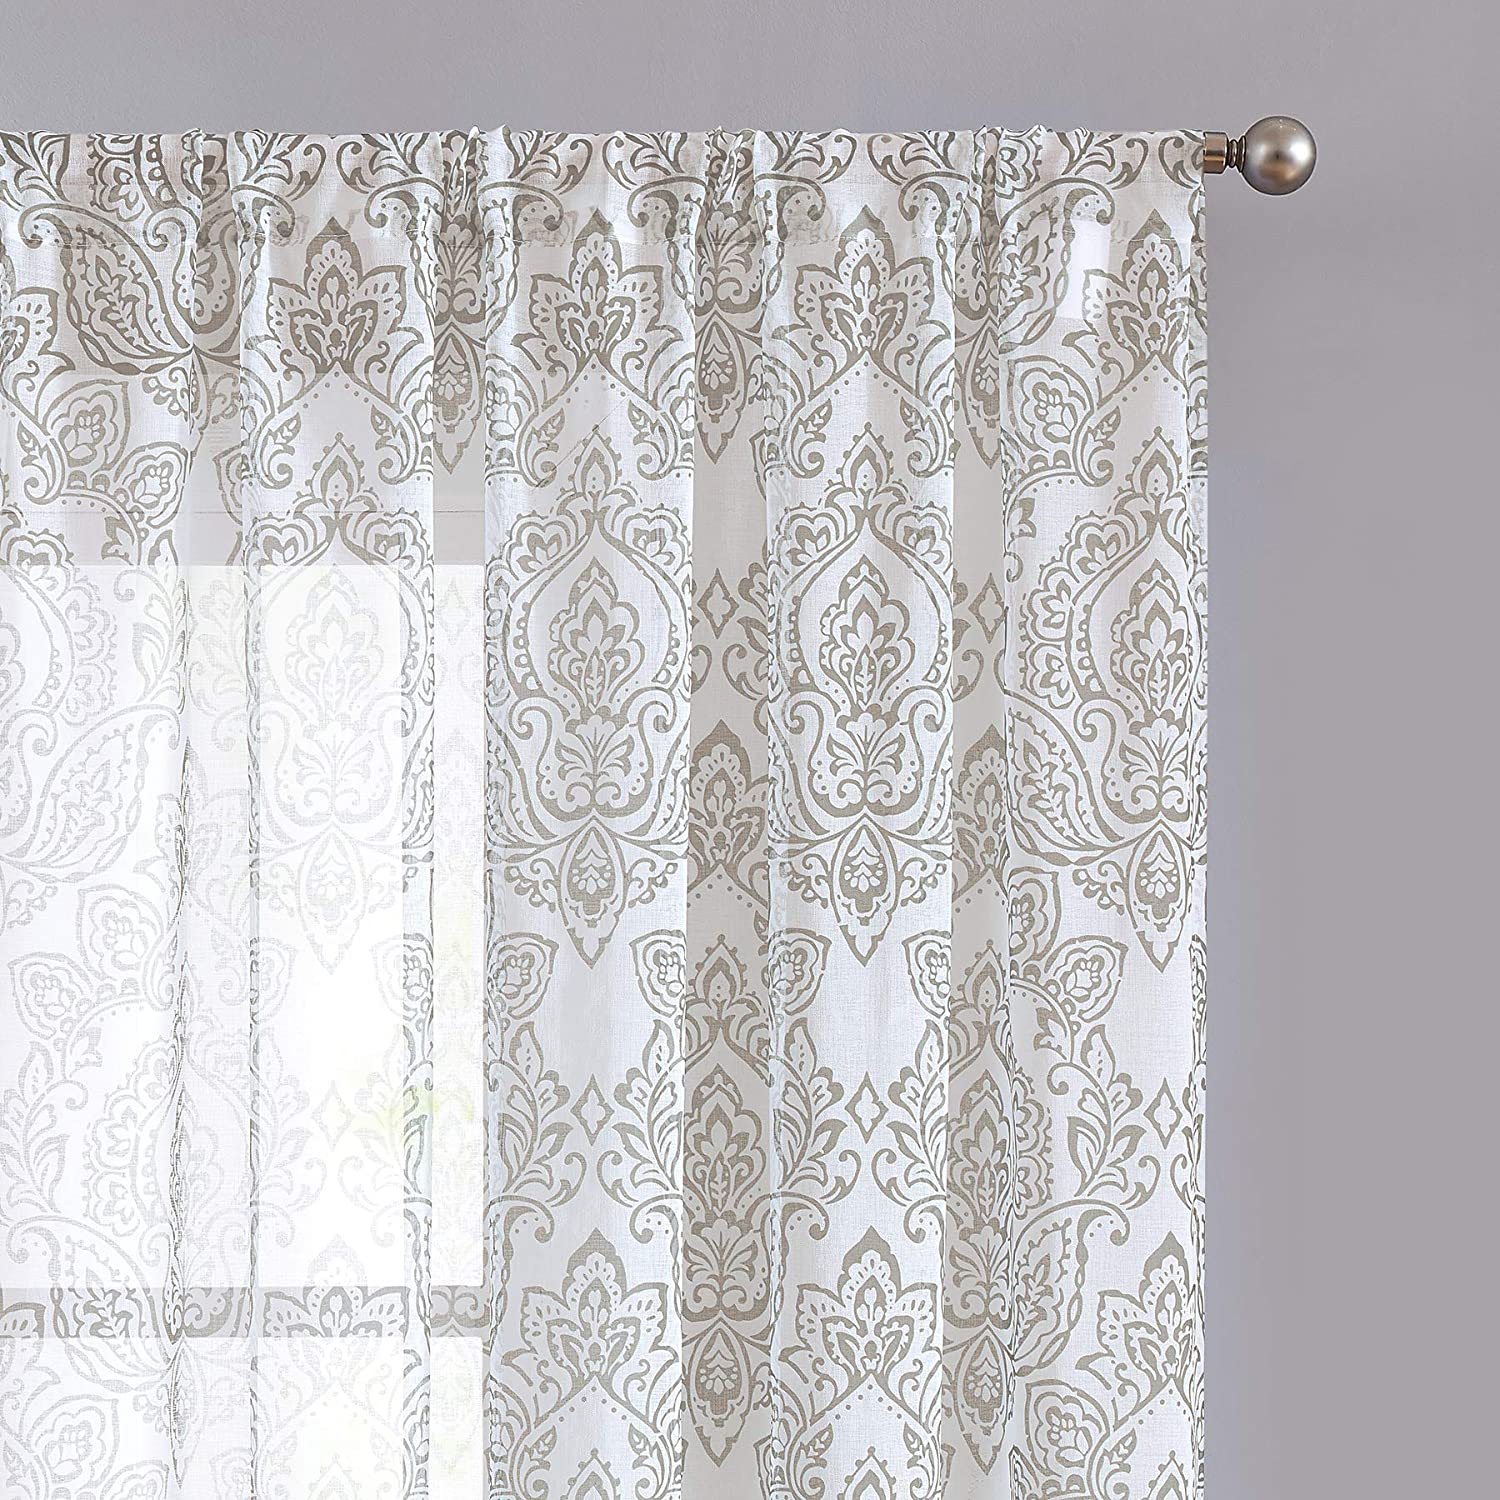 """Fmfunctex Damask Print Sheer Curtains for Living Room 95"""" Long Vintage Classic Floral Print on Sheer White Curtain Panels for Living Room Bedroom Window Draperies 1 Pair Natural"""